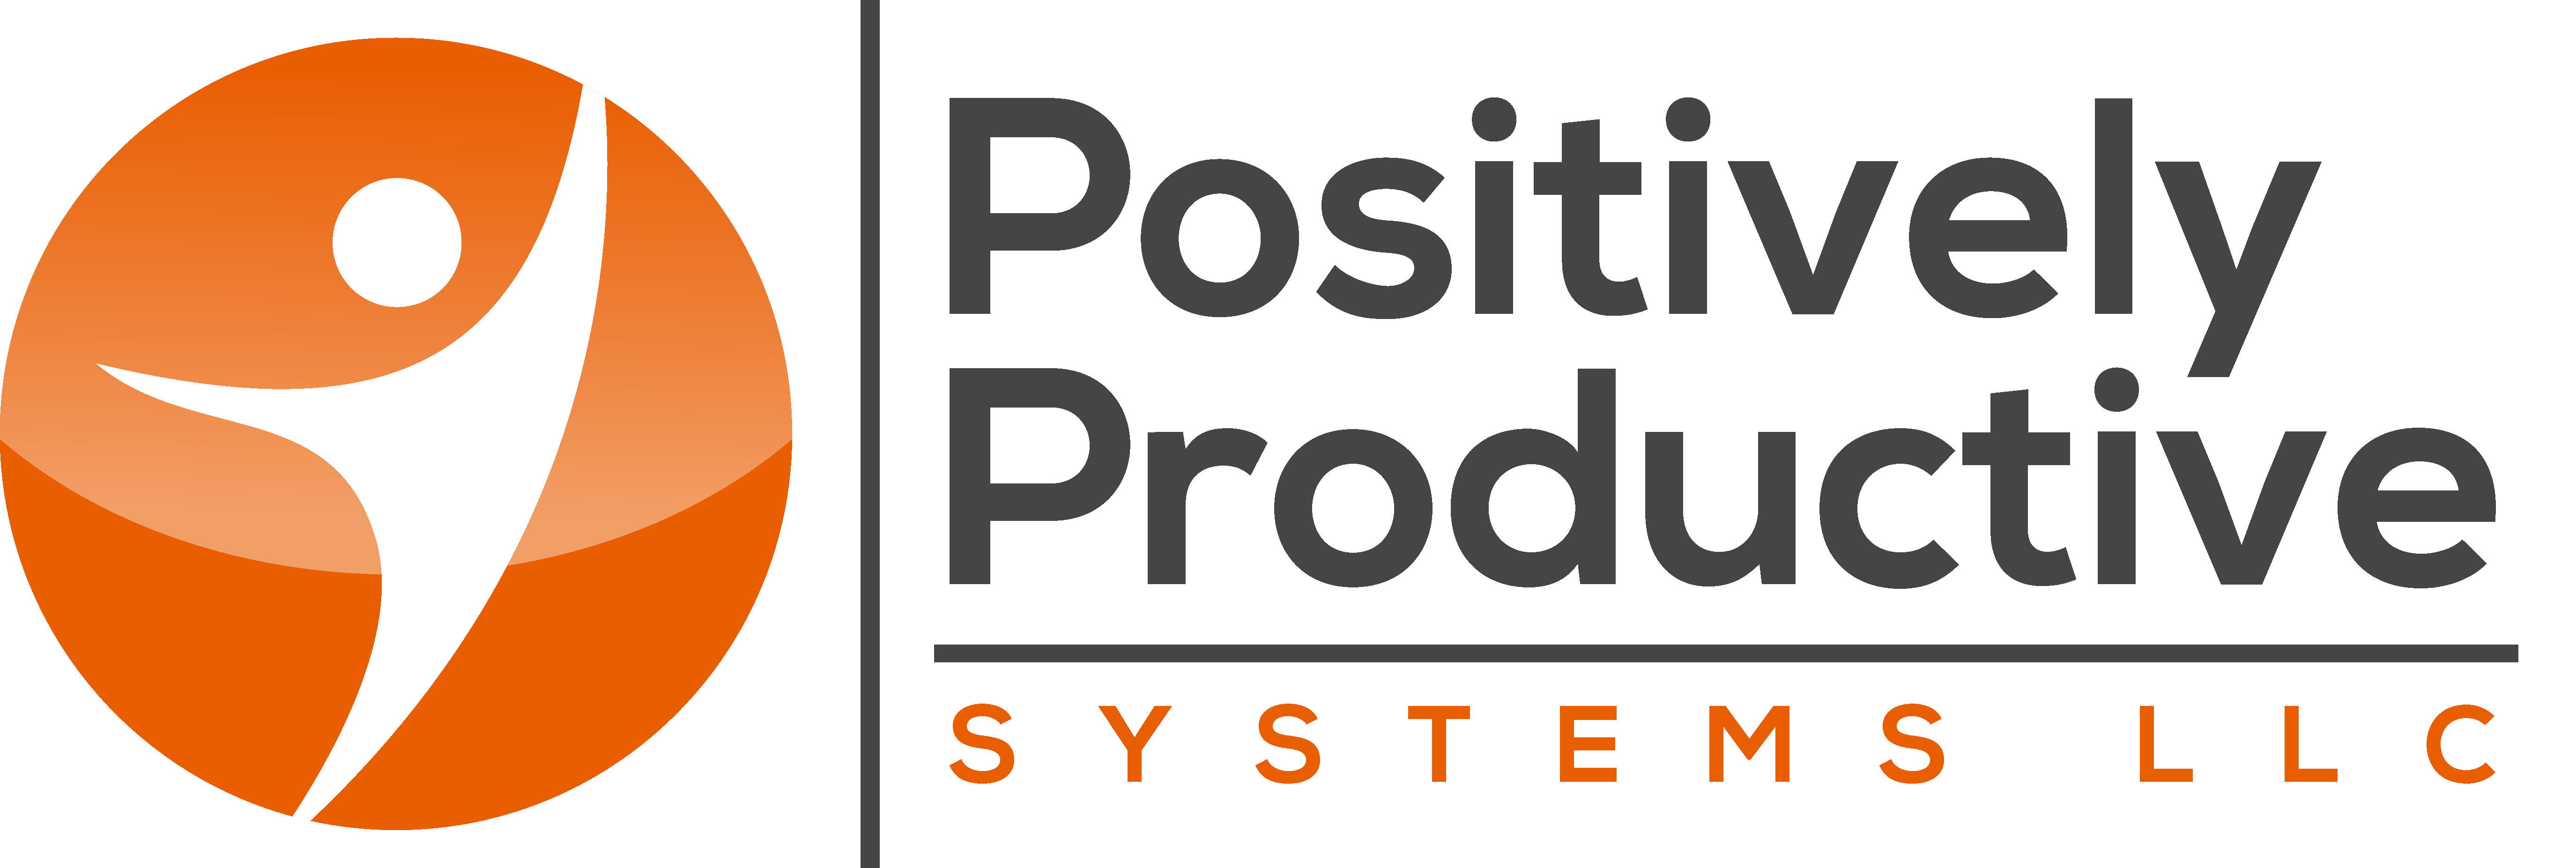 Positively Productive Systems LLC